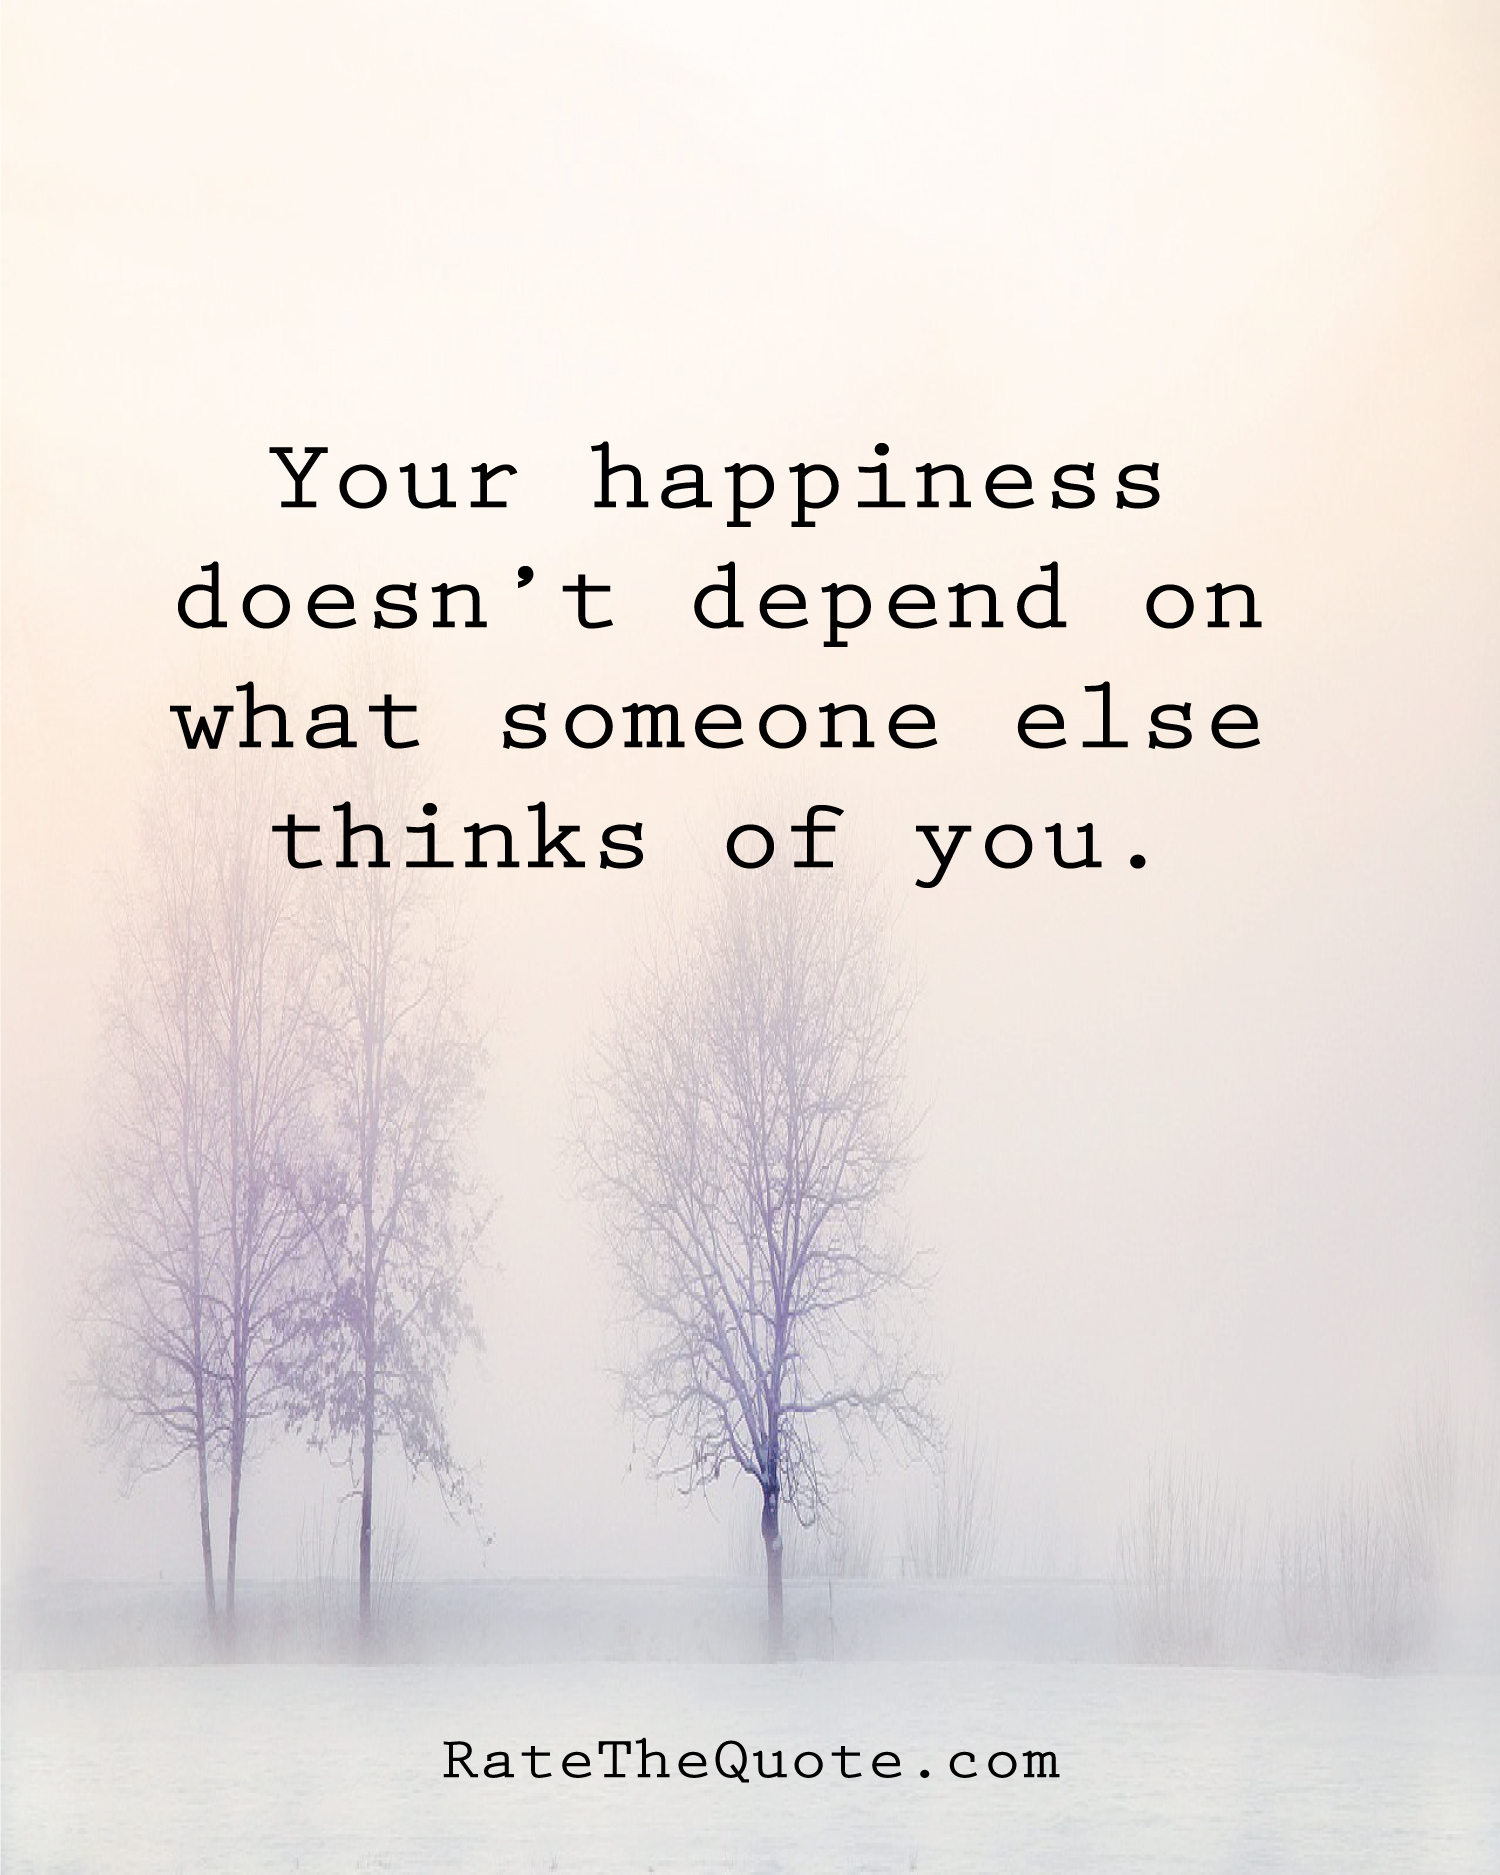 Your happiness doesn't depend on what someone else thinks of you.